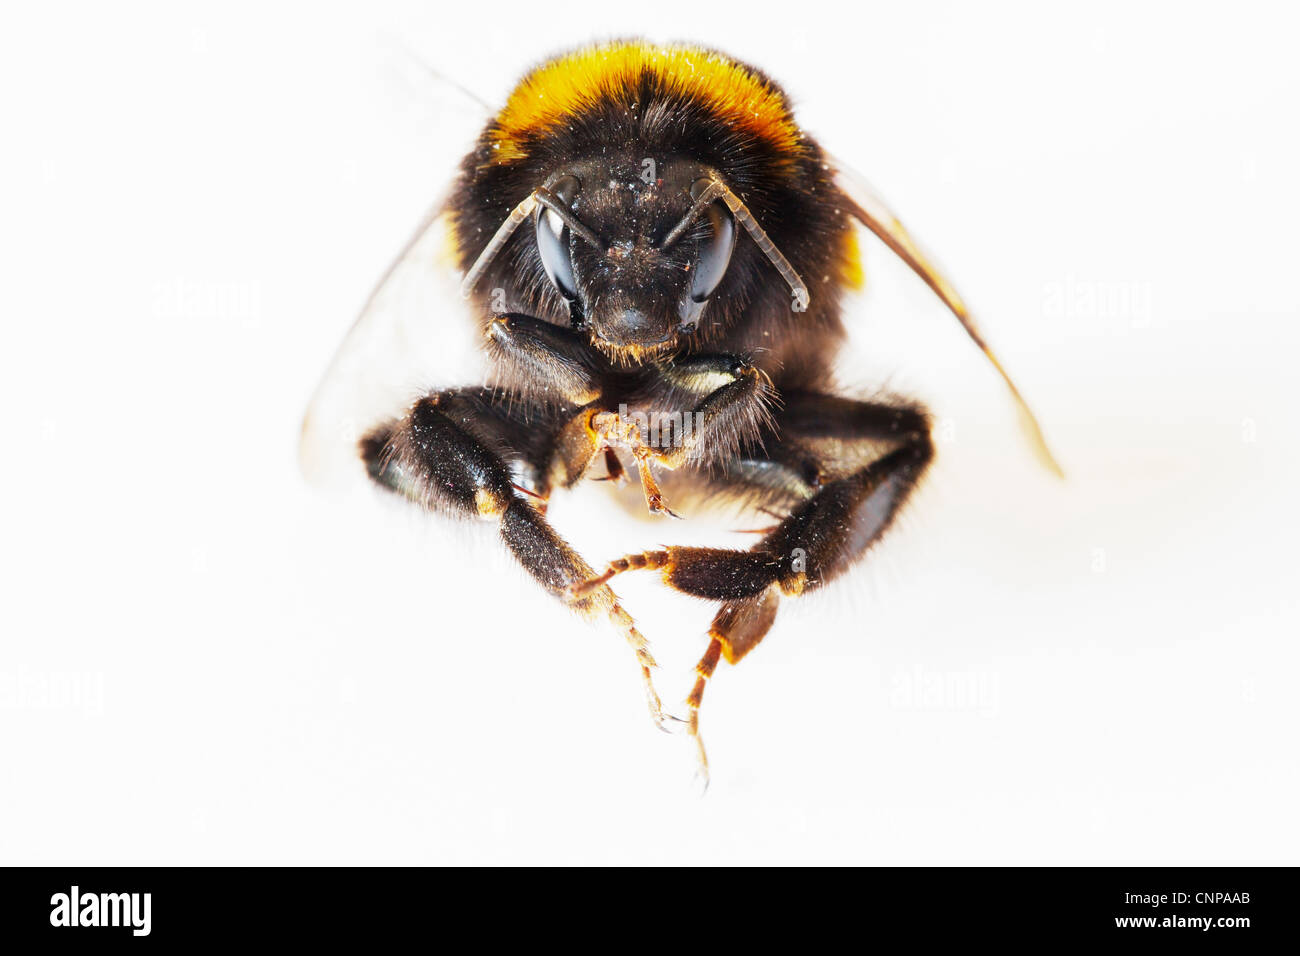 Close up (macro) anterior view of a Bumblebee (Bombus terrestris) against a white background - Stock Image